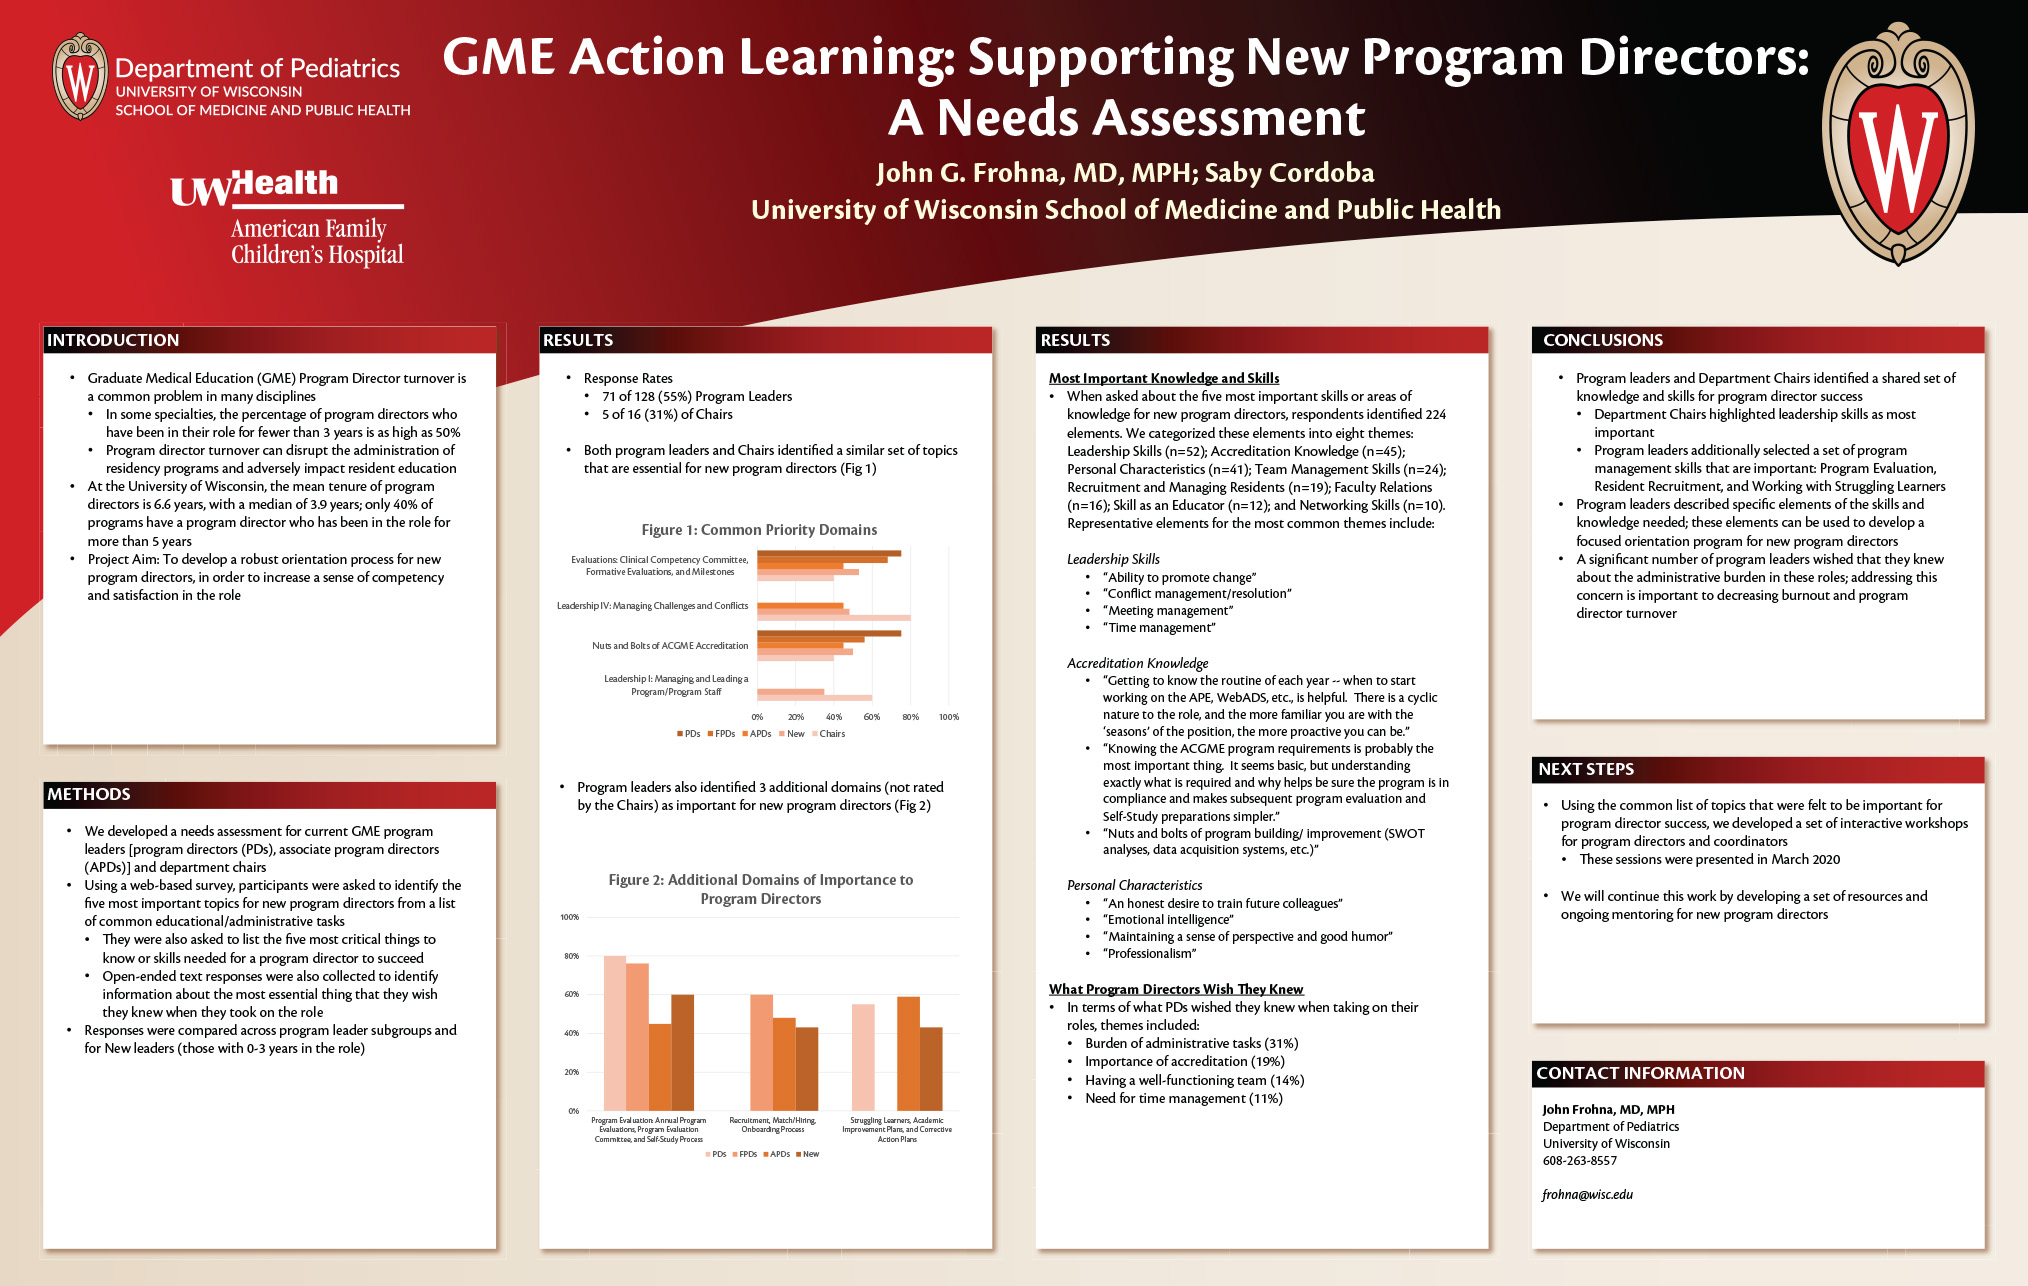 GME Action Learning: Supporting New Program Directors: A Needs Assessment poster image